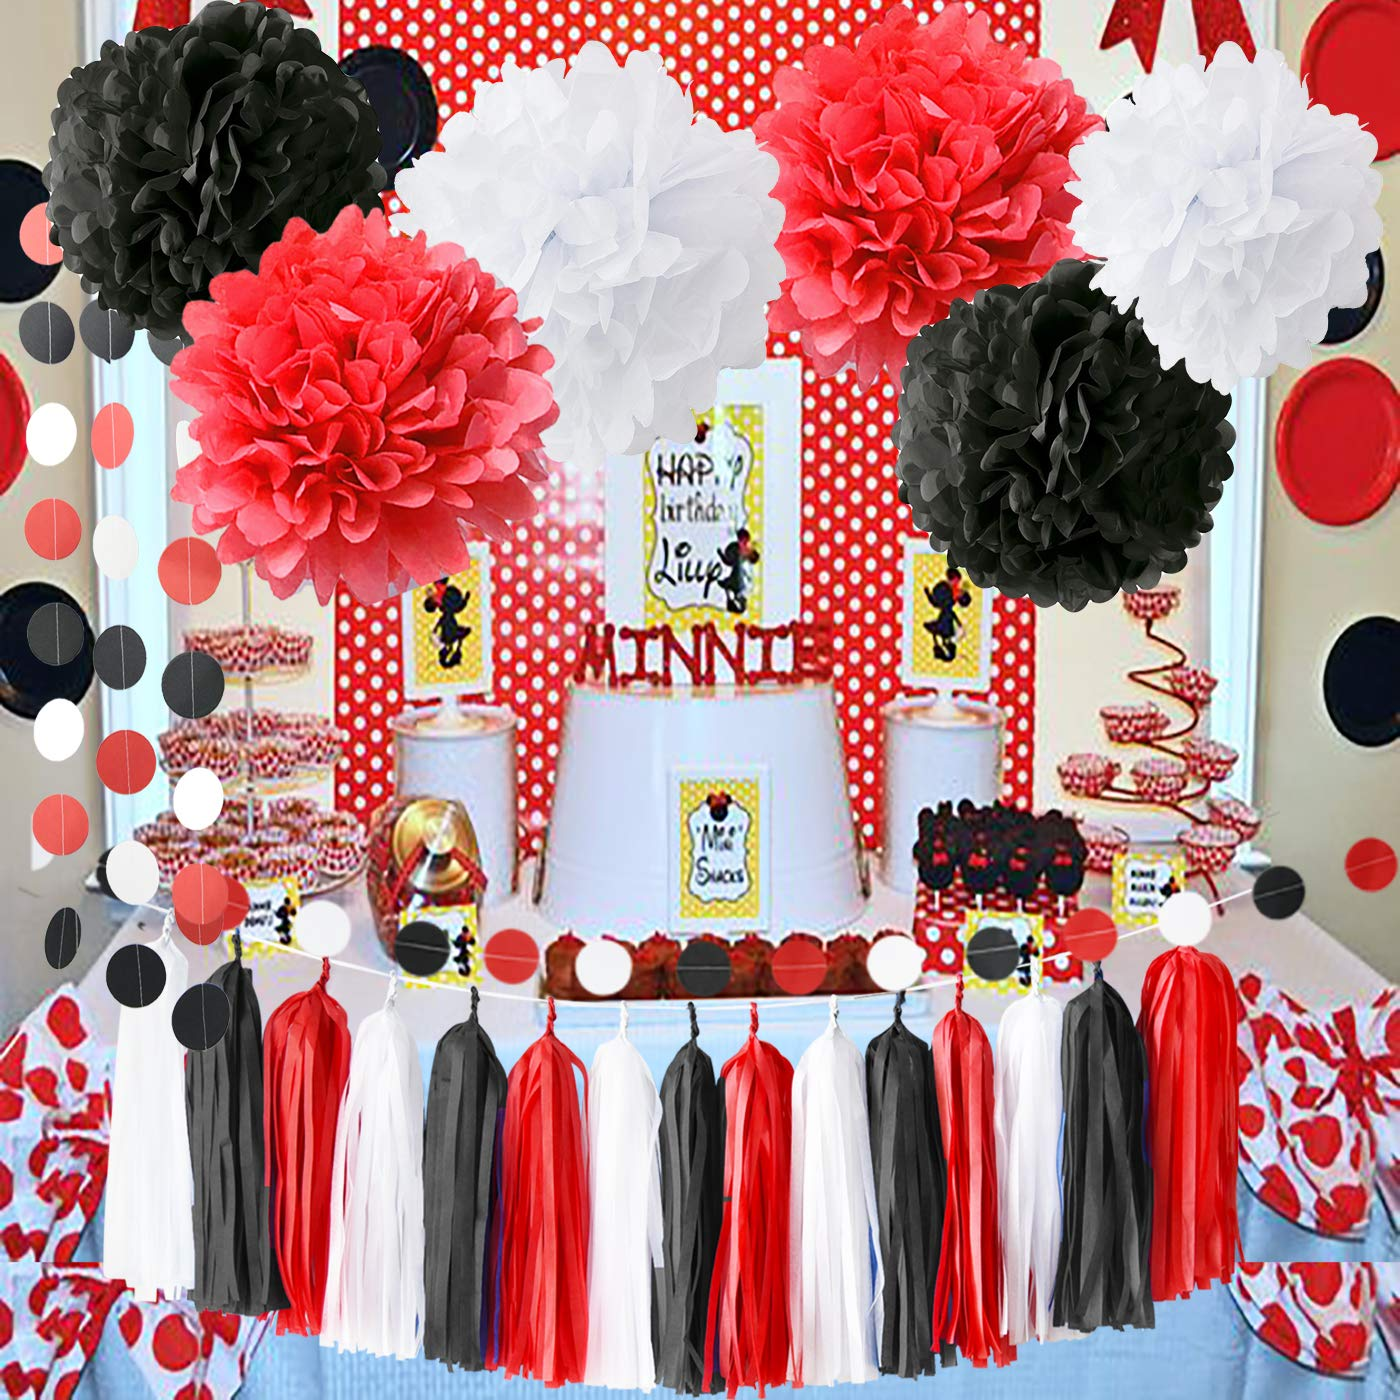 Minnie Mouse Party Supplies White Black Red Baby Ladybug Birthday Party Decorations First Birthday Girl Decorations Tissue Paper Pom Pom Tassel